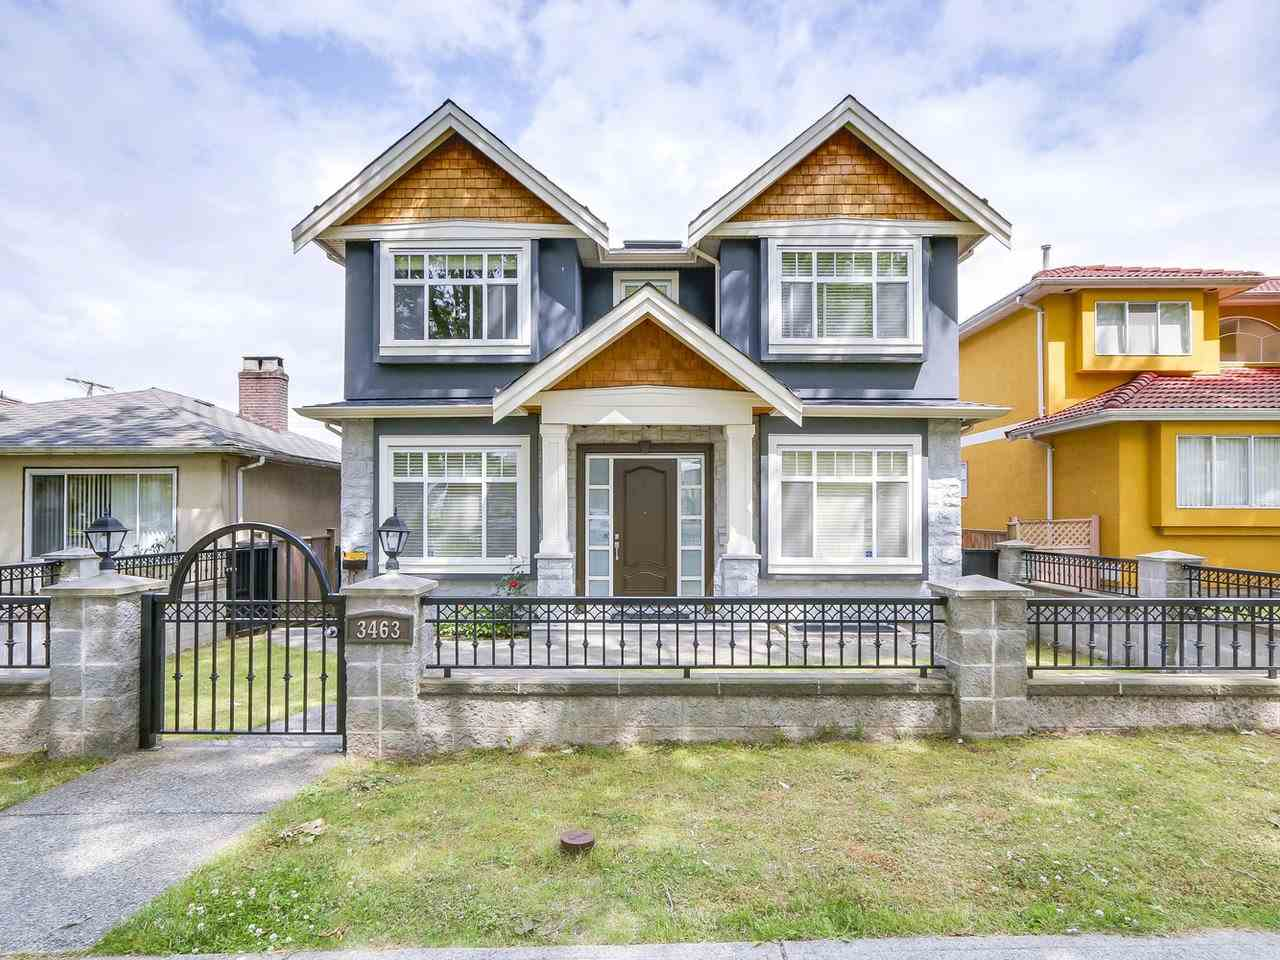 Detached at 3463 E 22ND AVENUE, Vancouver East, British Columbia. Image 1